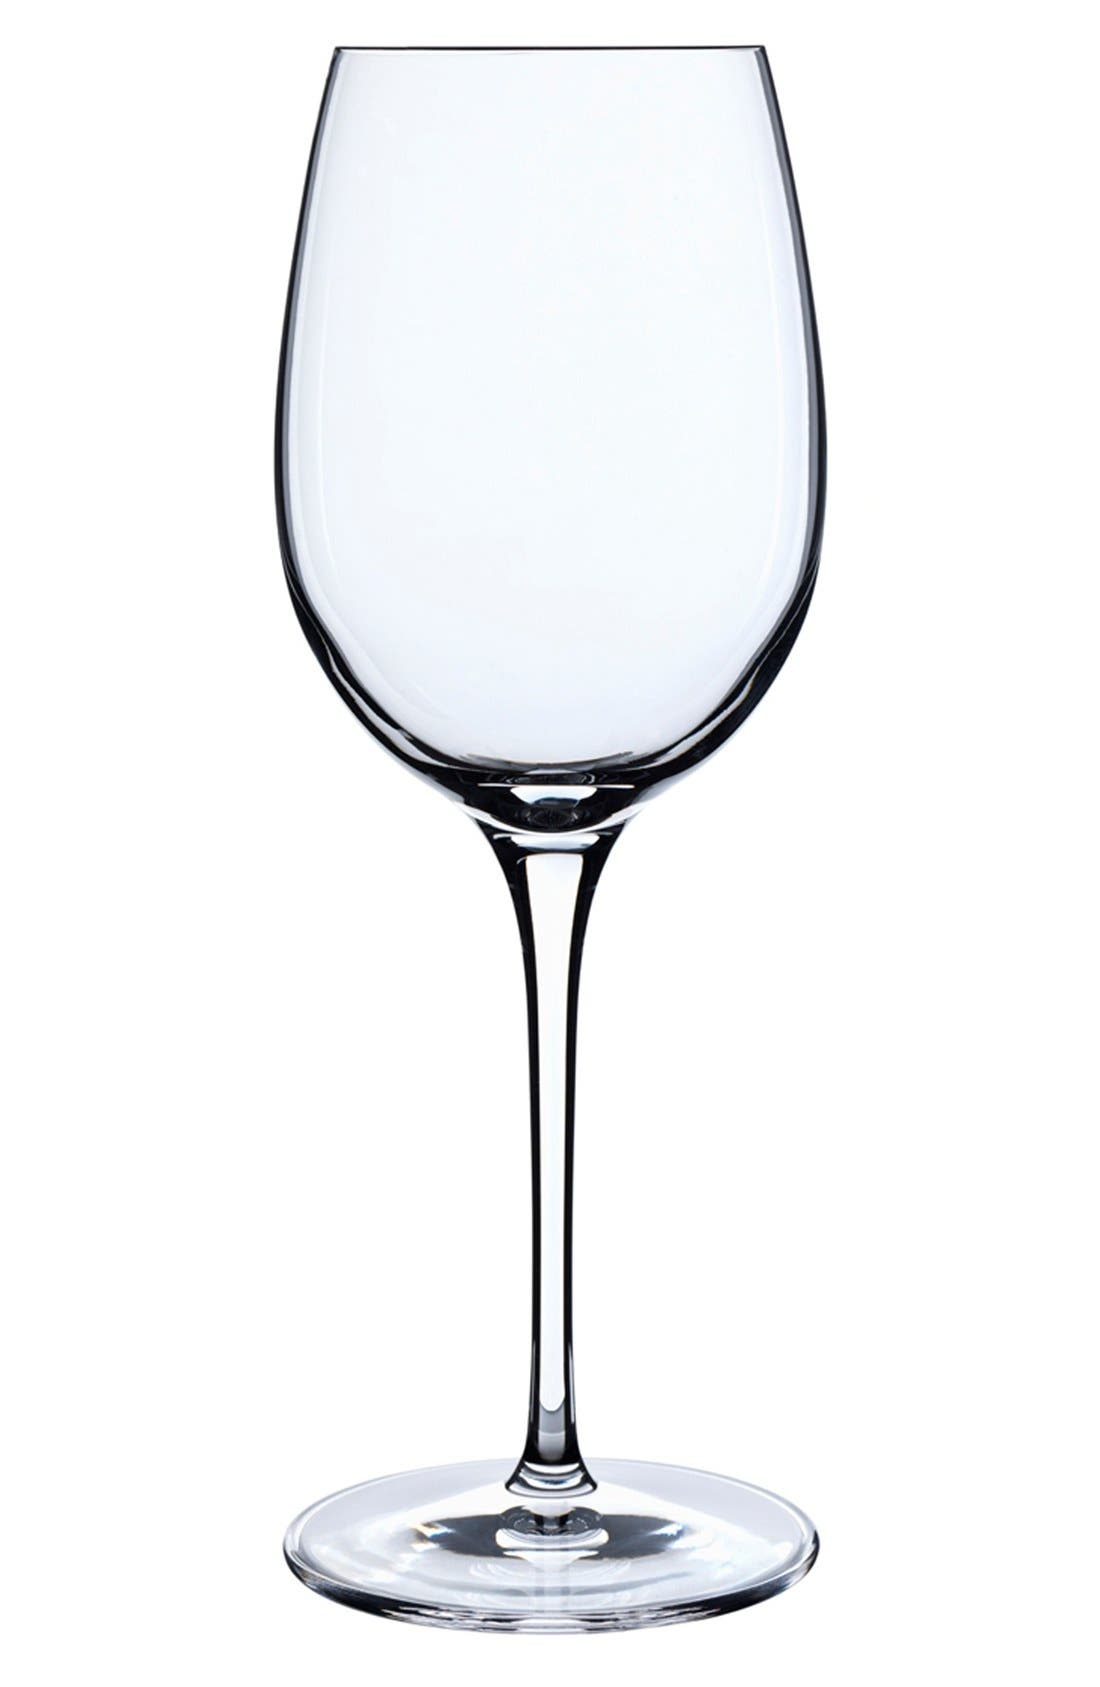 Main Image - Luigi Bormioli Crescendo Set of 4 Chardonnay Glasses